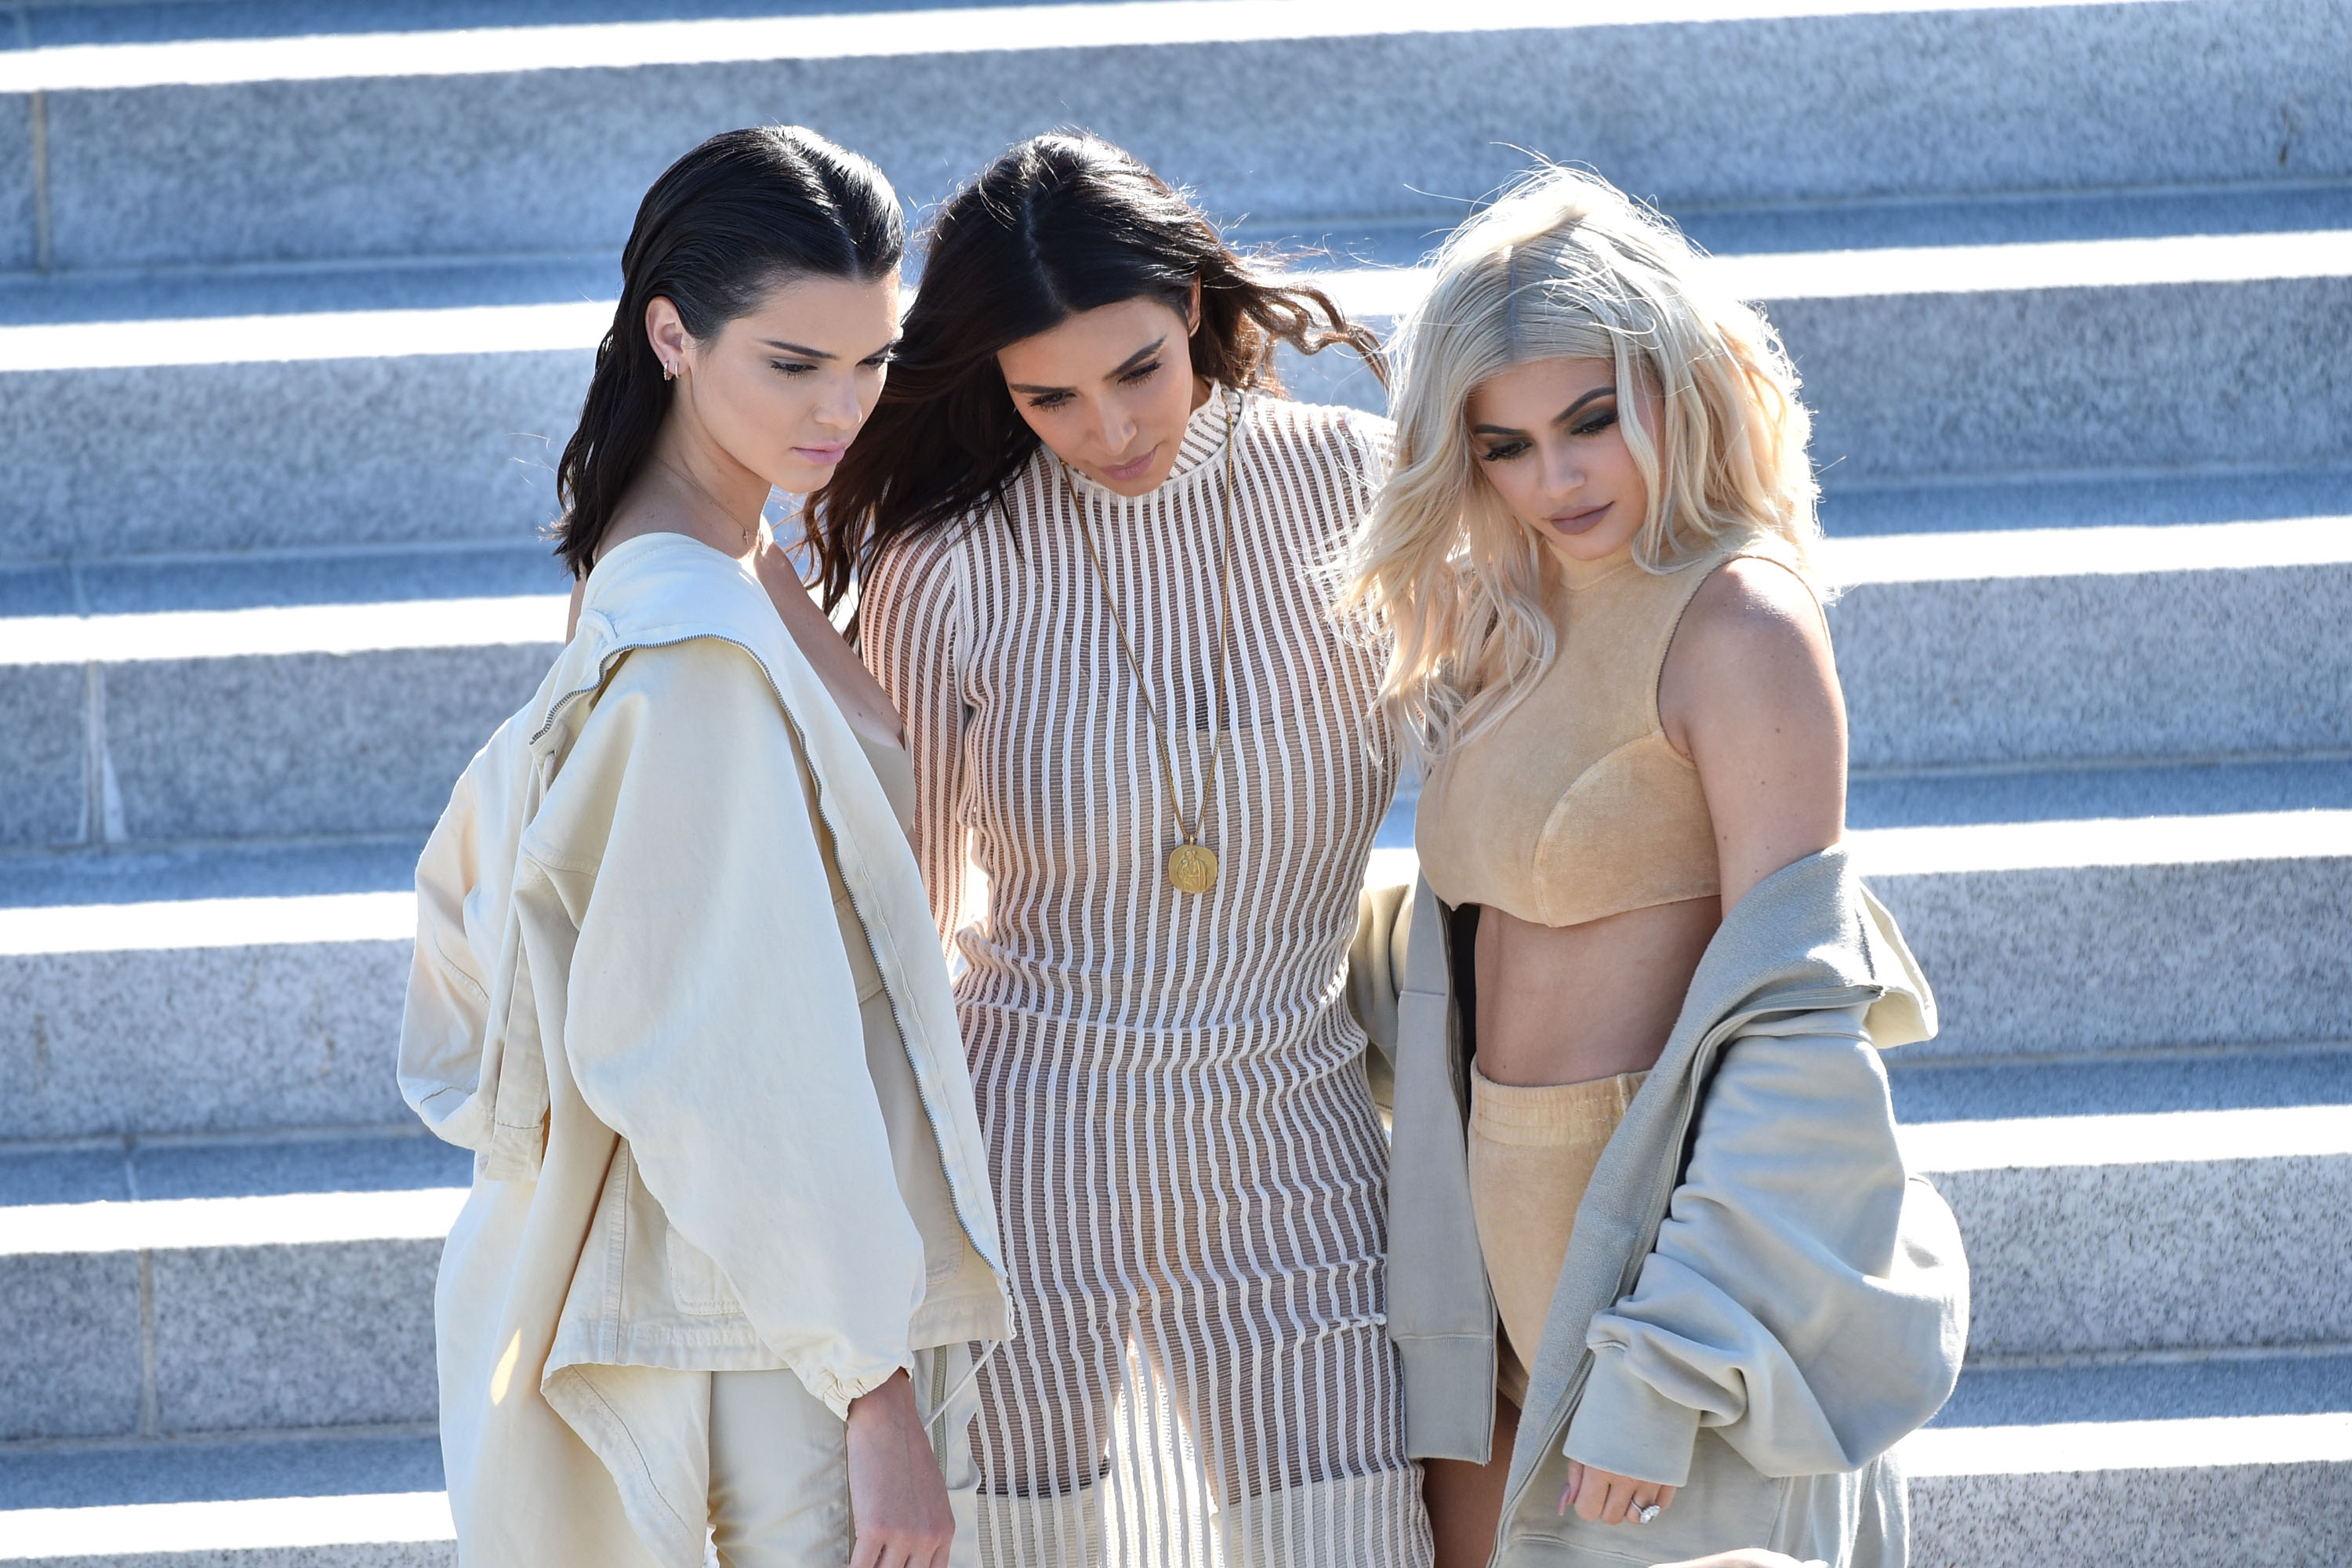 This insane NYFW pop-up will let you step inside a Kendall & Kylie Jenner matrix